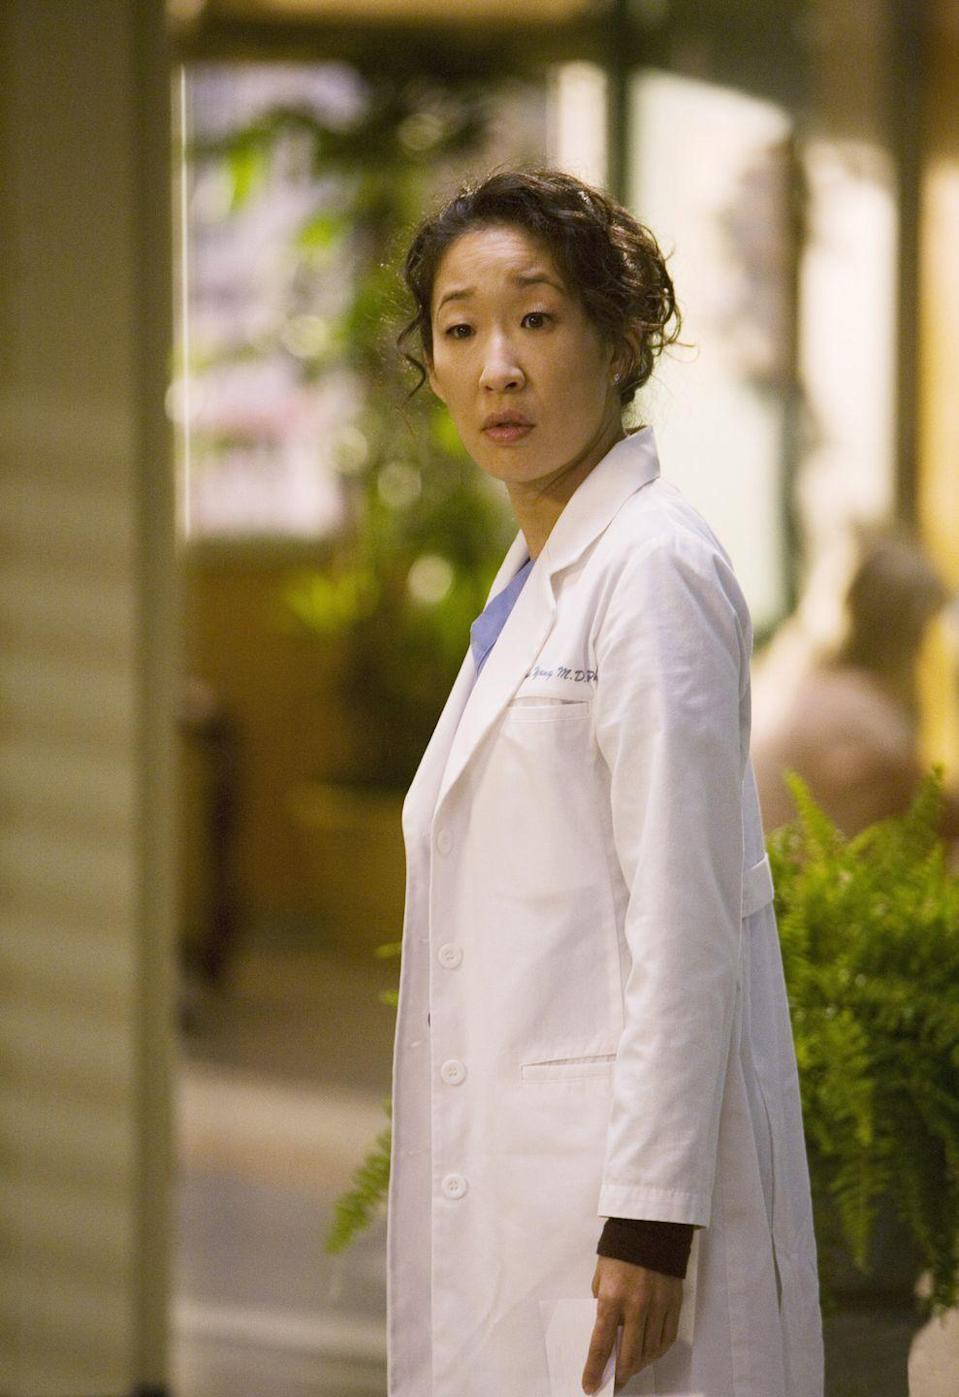 """<p>""""At that time I was practicing asking for what I wanted in my life, which I still practice today. And I saw the part of Christina Yang and I wanted to do that part,"""" she <a href=""""https://www.youtube.com/watch?v=pJ8avIEuD9I"""" rel=""""nofollow noopener"""" target=""""_blank"""" data-ylk=""""slk:said"""" class=""""link rapid-noclick-resp"""">said</a>. """"So even though Shonda wanted me to come in for the part of Bailey, I said, 'No I want to come in for Christina.'"""" </p>"""